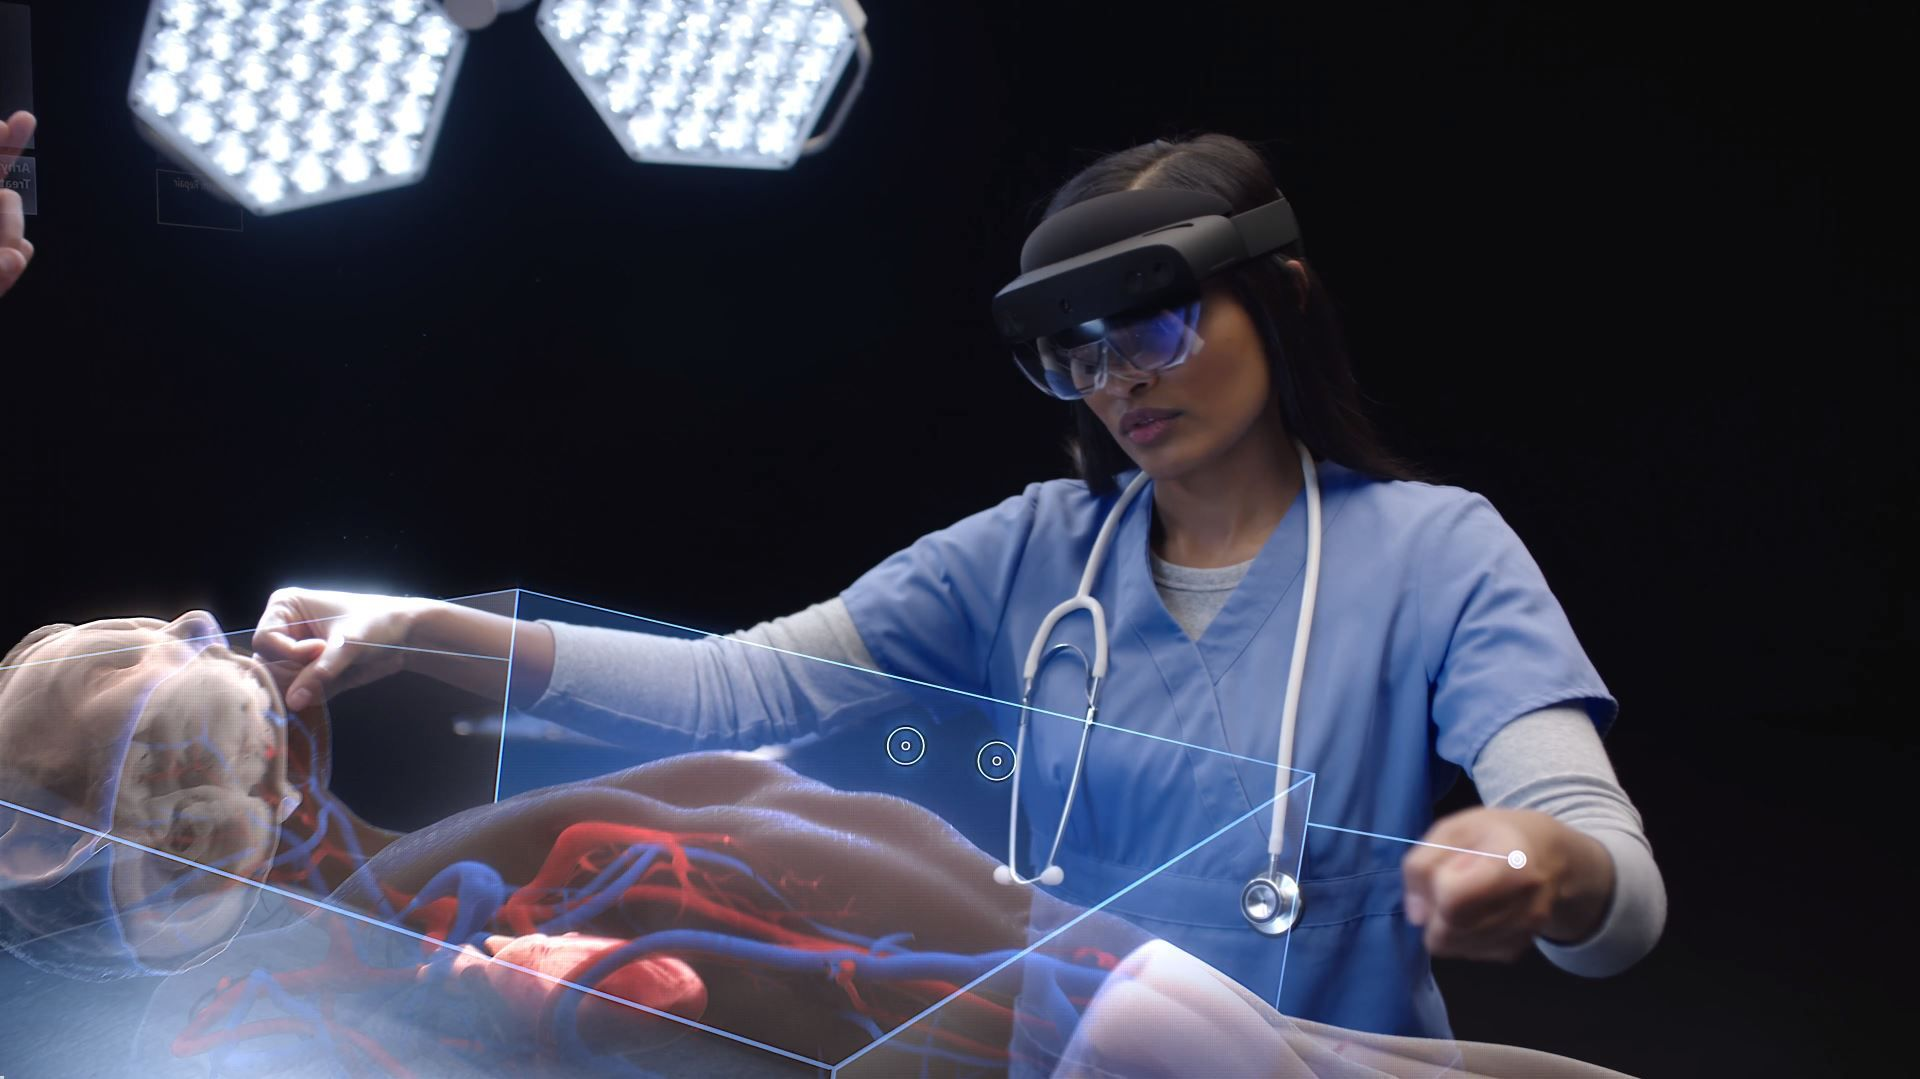 A doctor uses HoloLens 2 to visualize a patient's circulatory system.